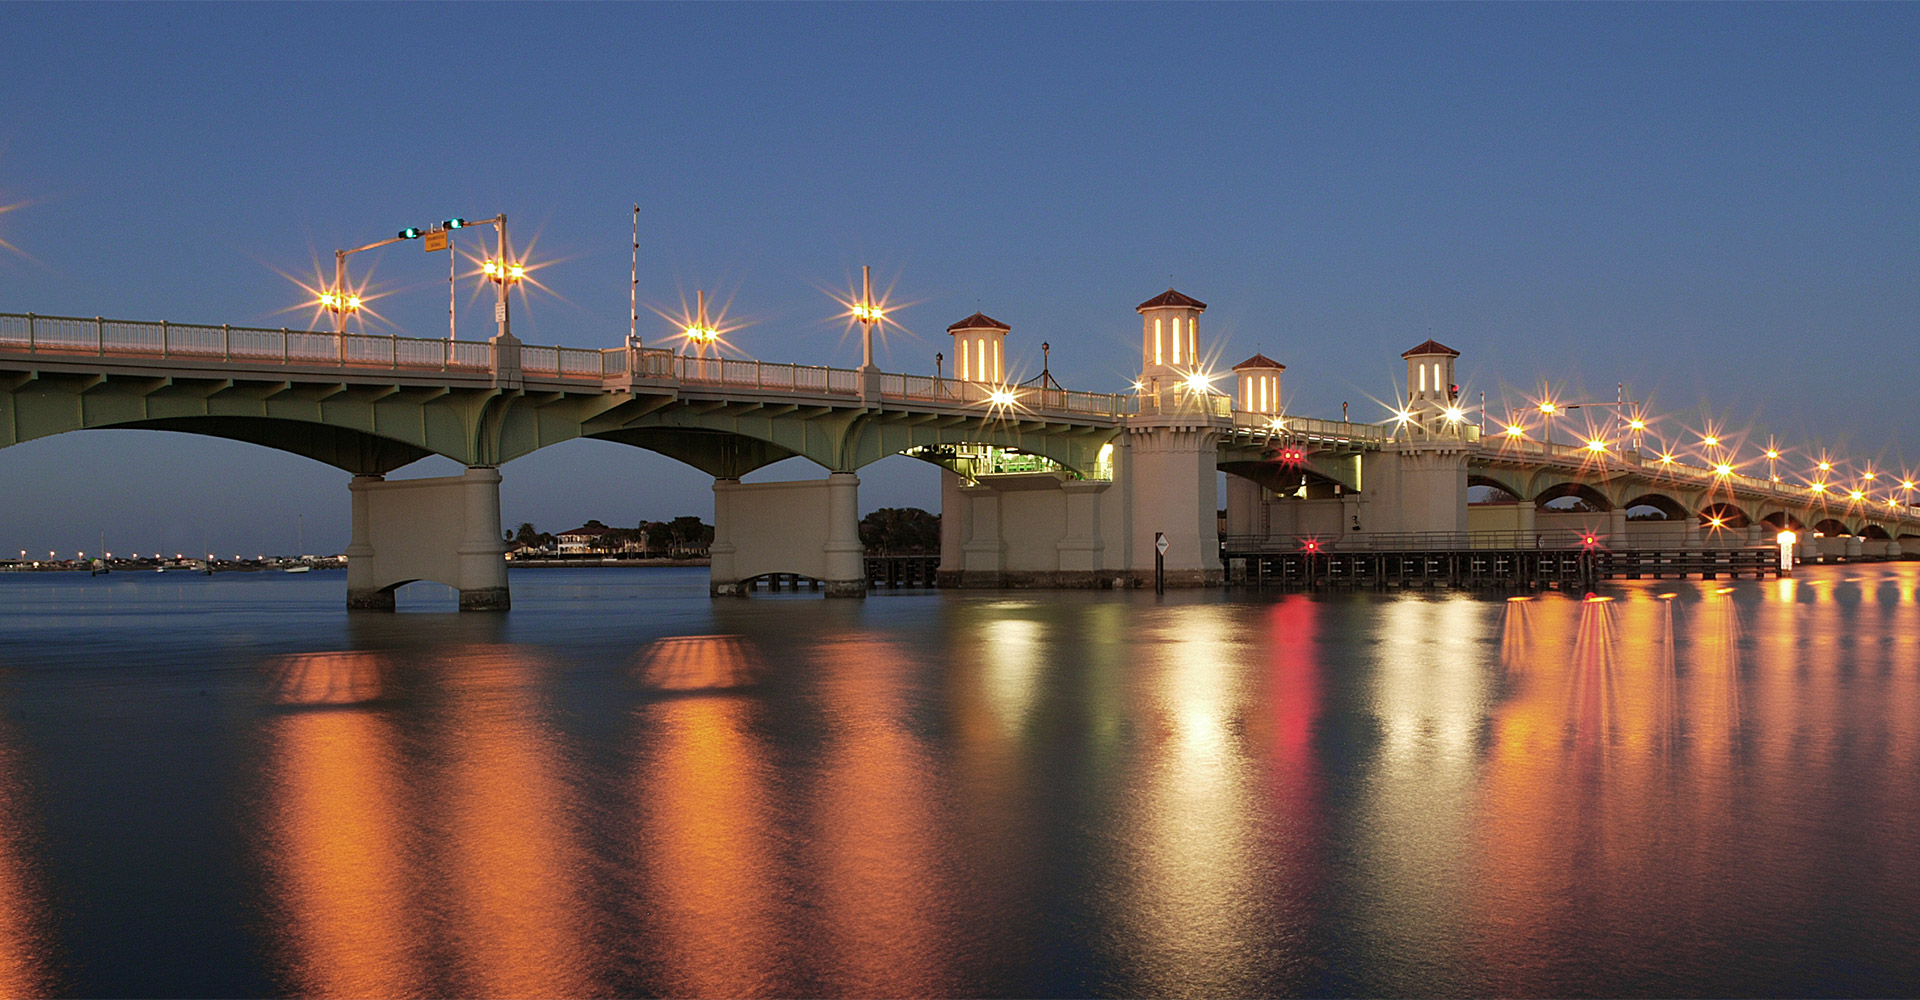 Bridge of Lions at night.